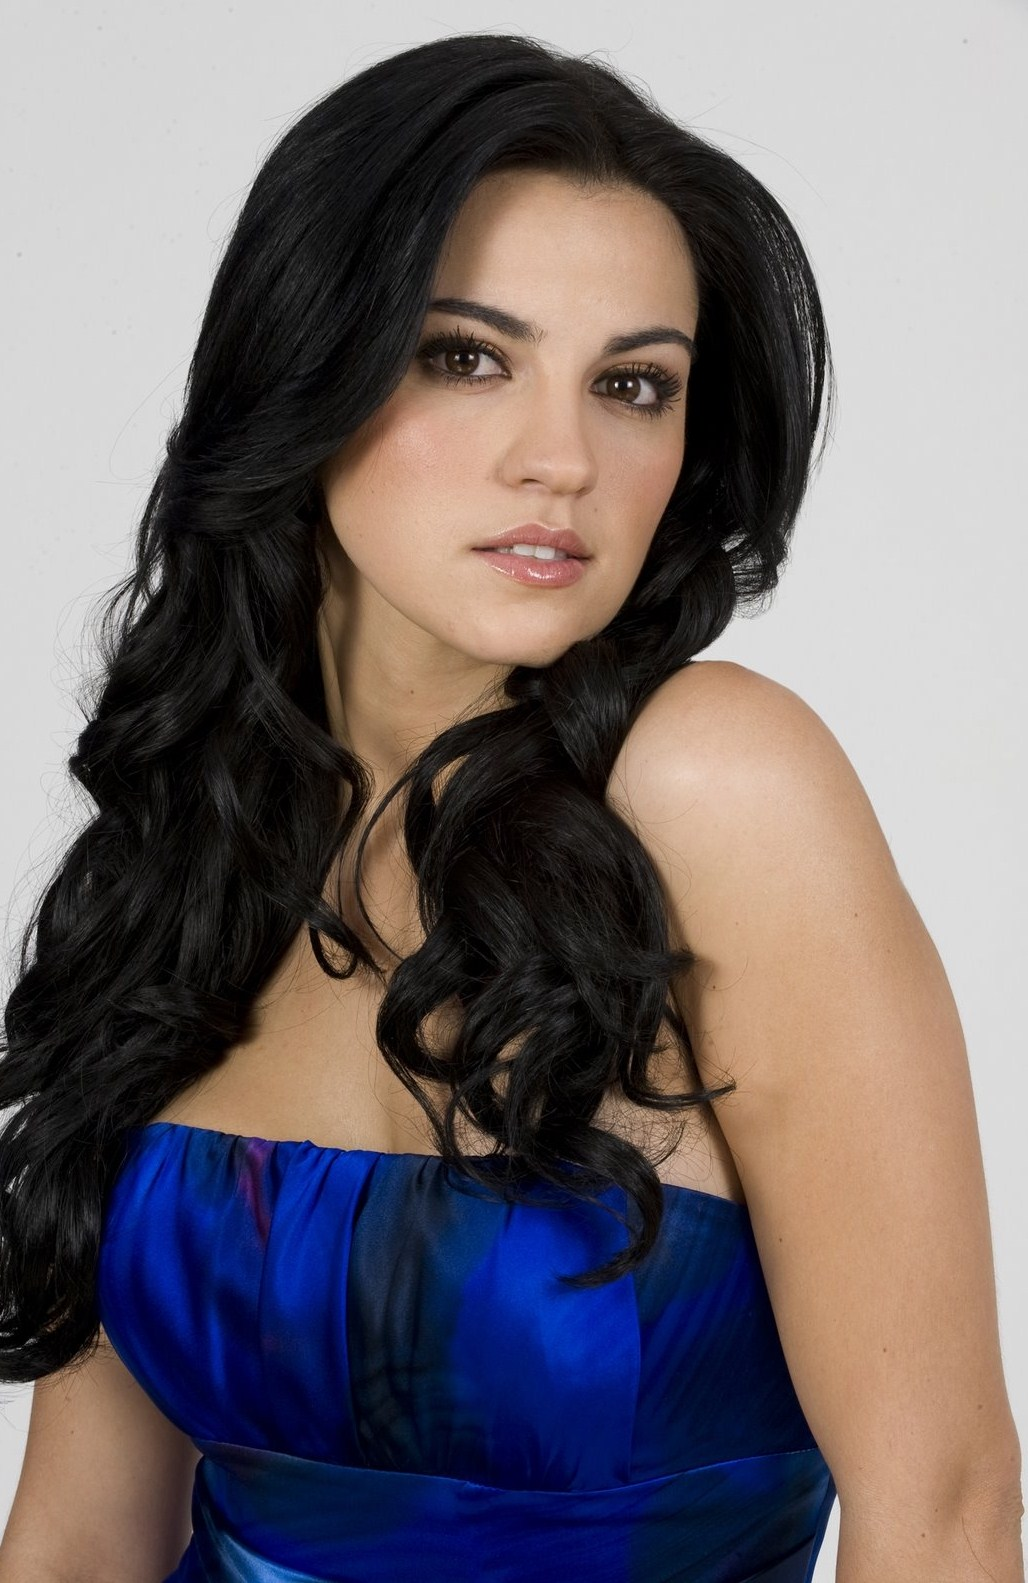 Watch sinn sex maite perroni